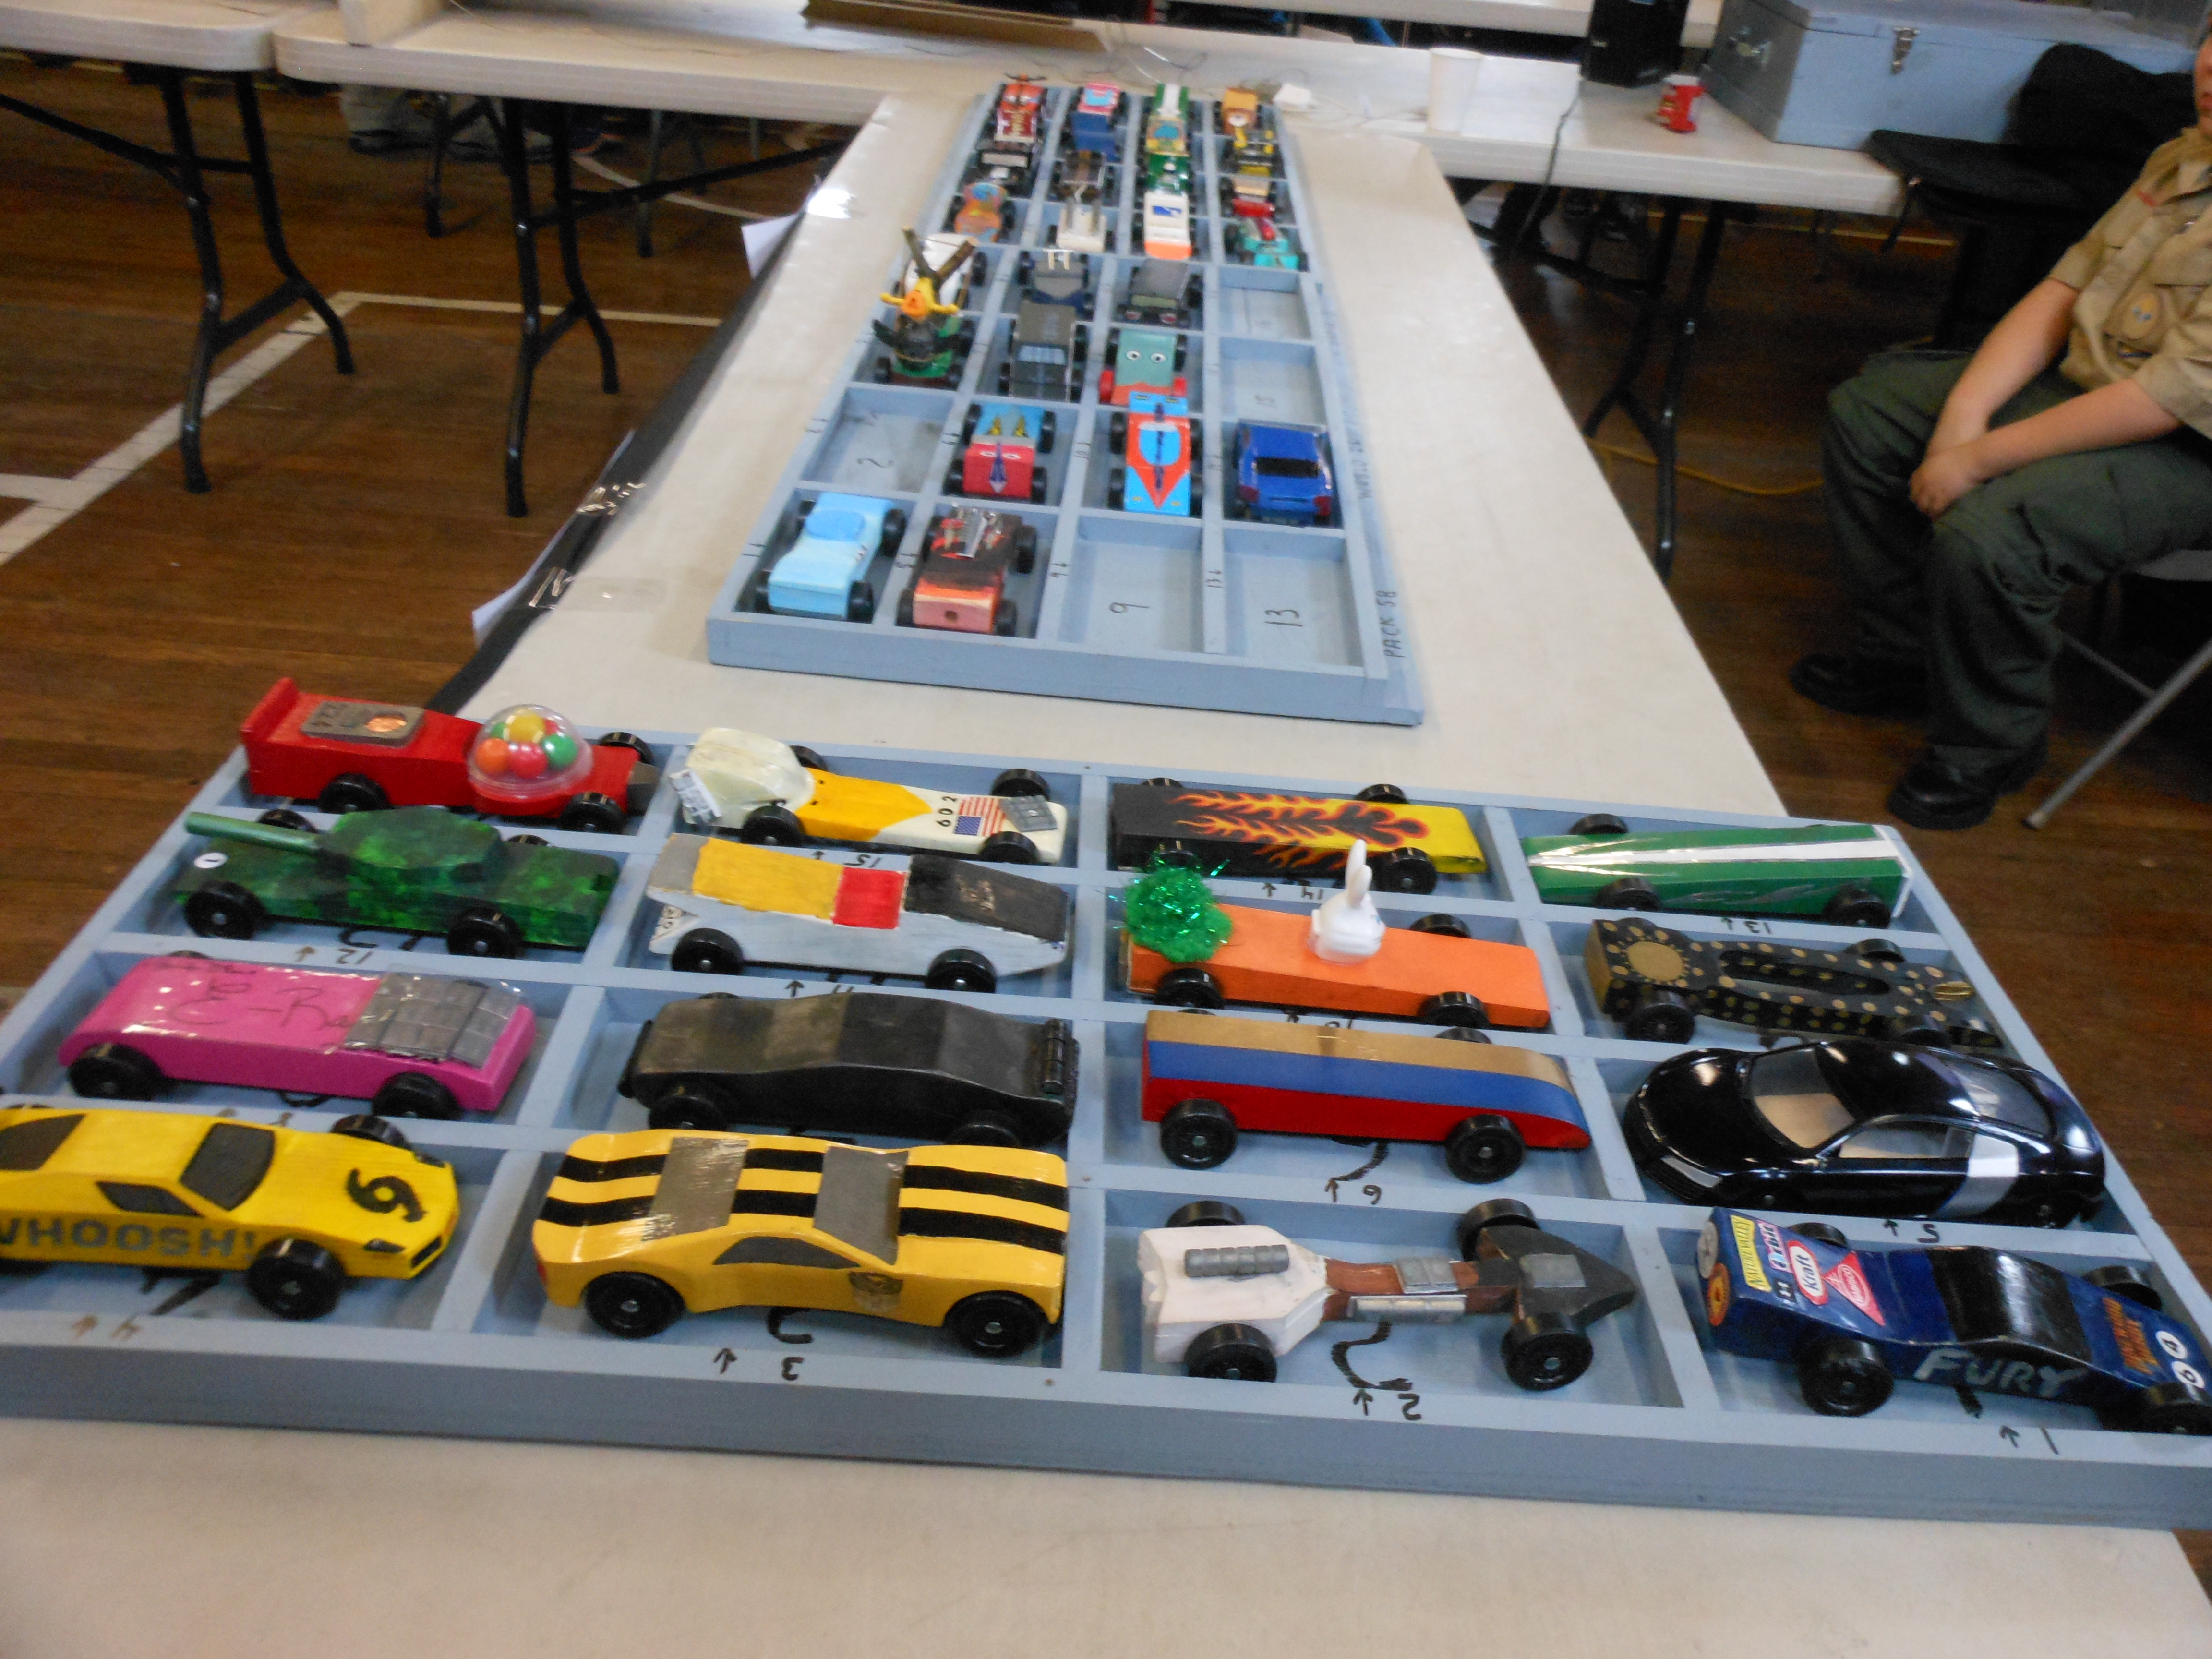 THE FIELD OF COMPETITORS: These are the cars that competed last Saturday in Saugus Cub Scout Pack 62's annual Pinewood Derby, which was held in the basement of Cliftondale Congregational Church. (Saugus Advocate photos by Mark E. Vogler)